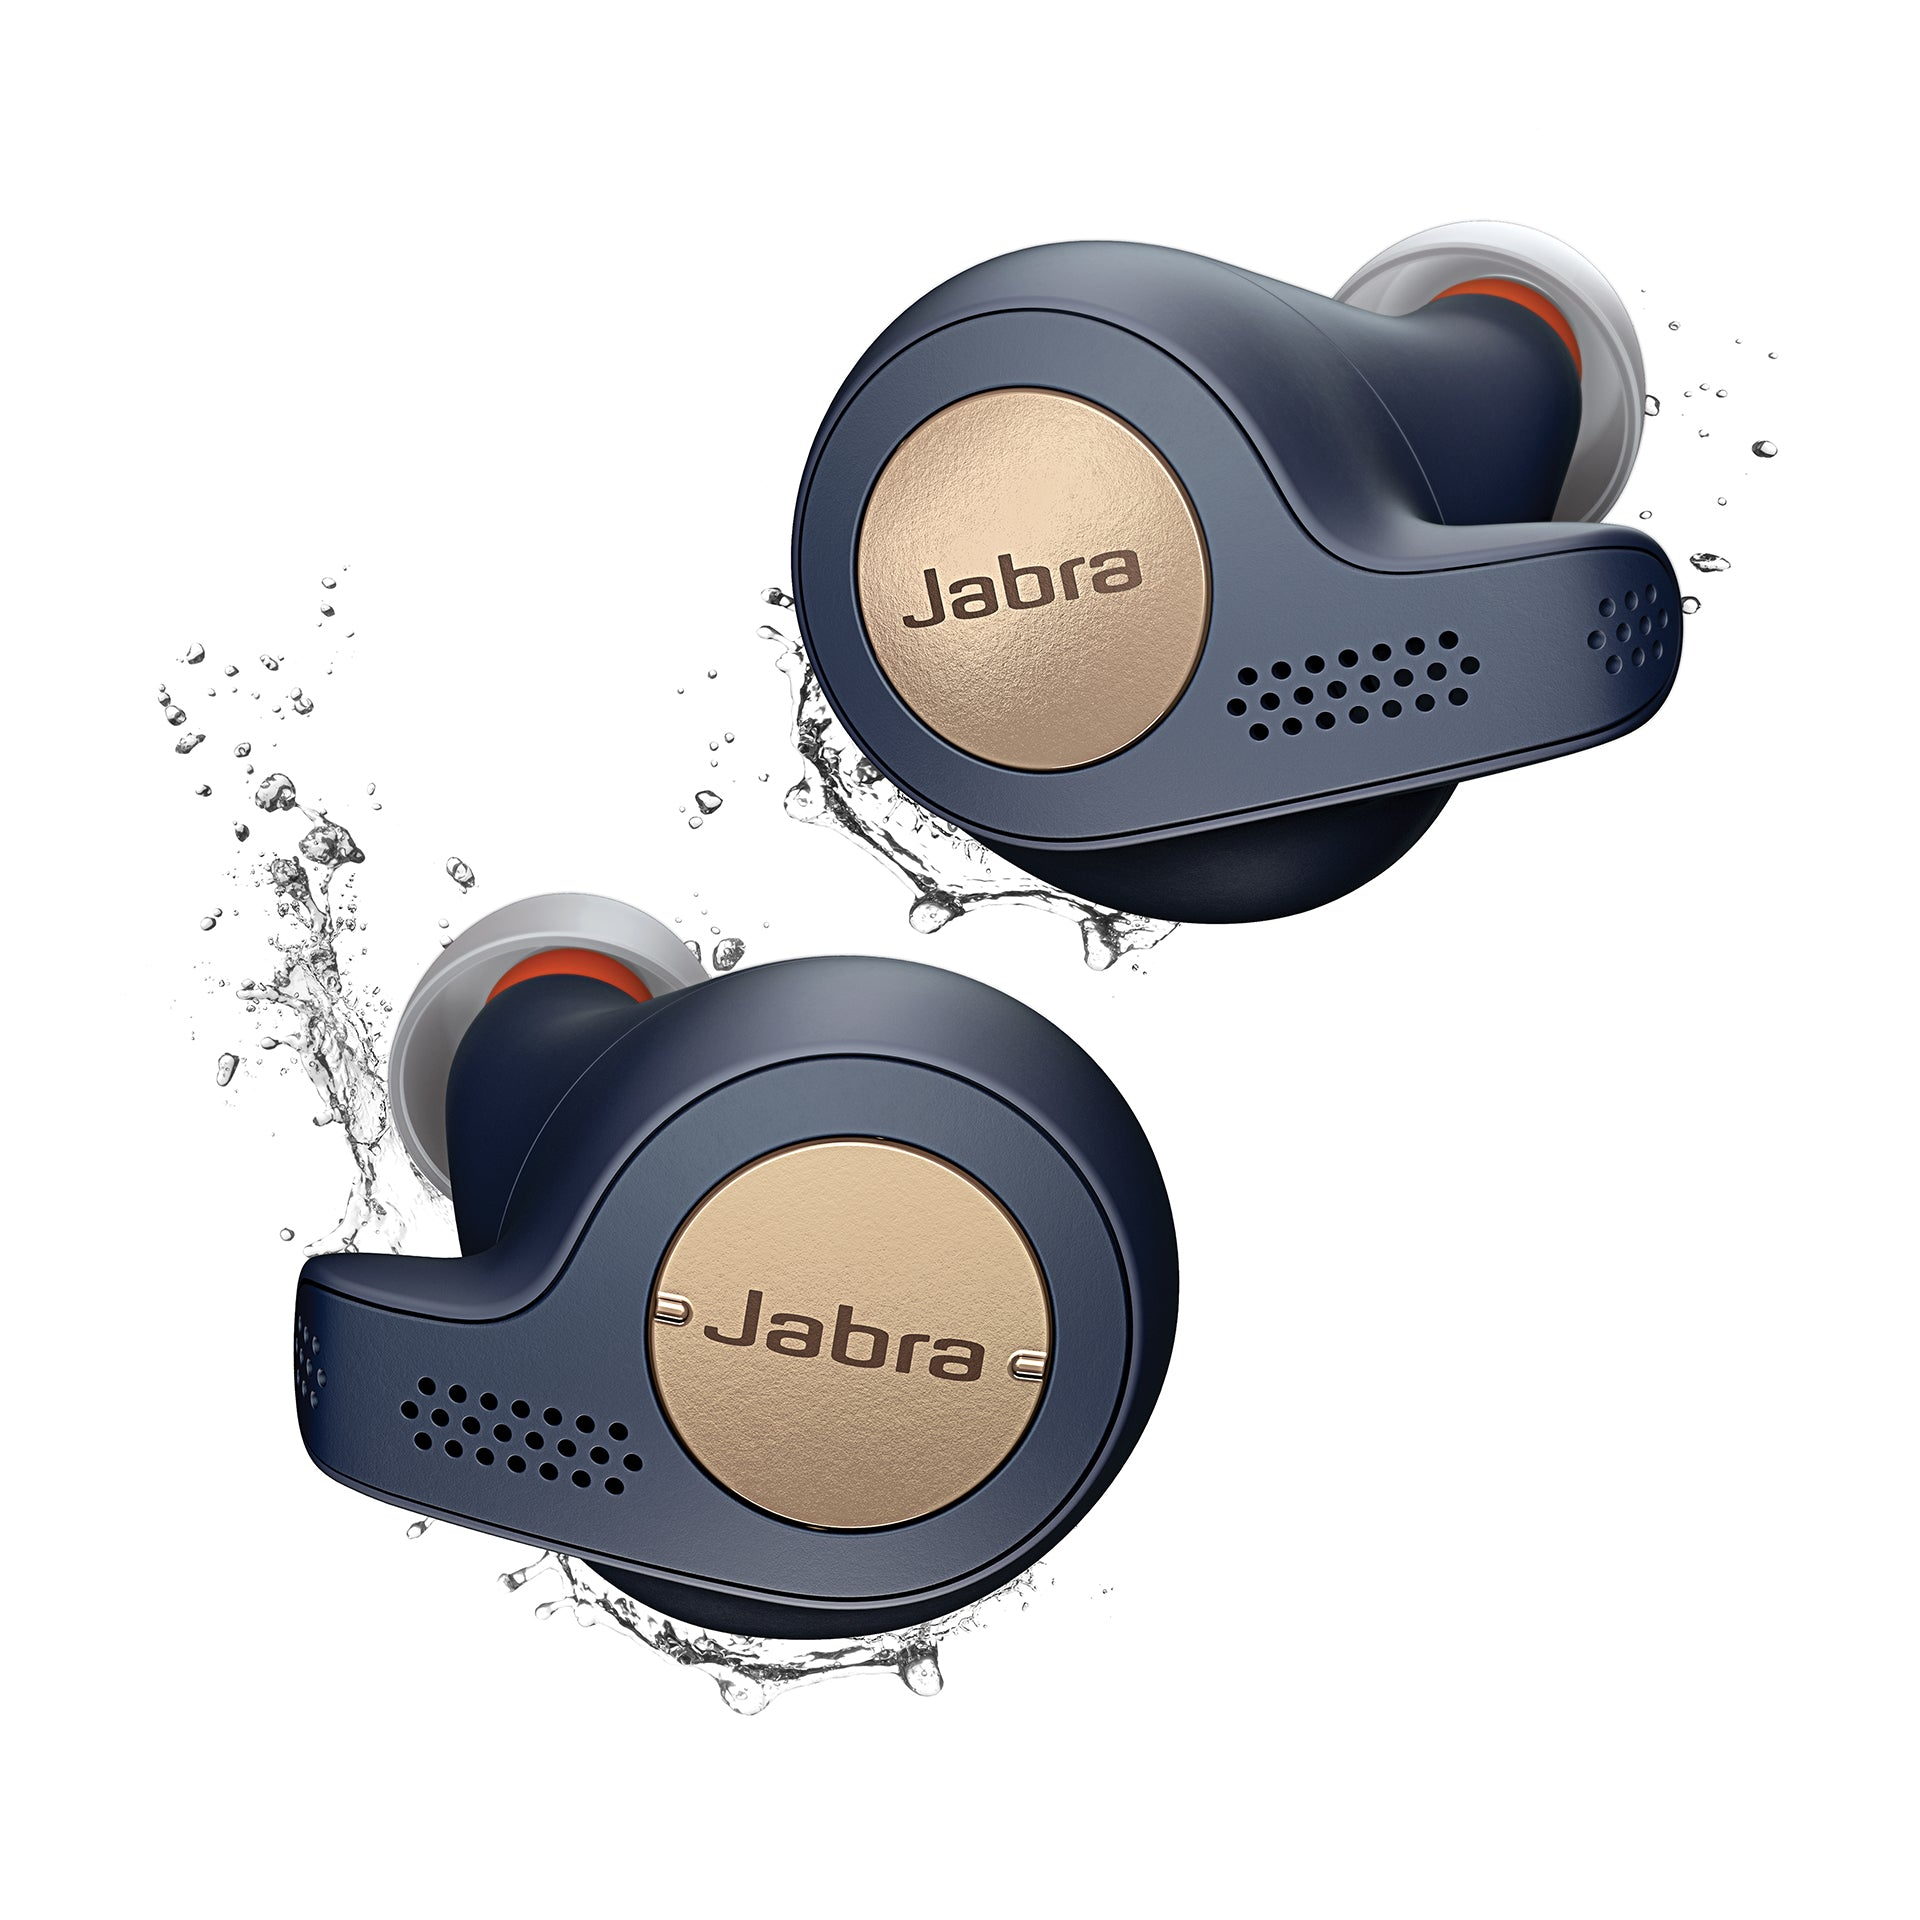 Jabra Elite Active 65t Truly Wireless Earbuds - Built to work, Durability guaranteed